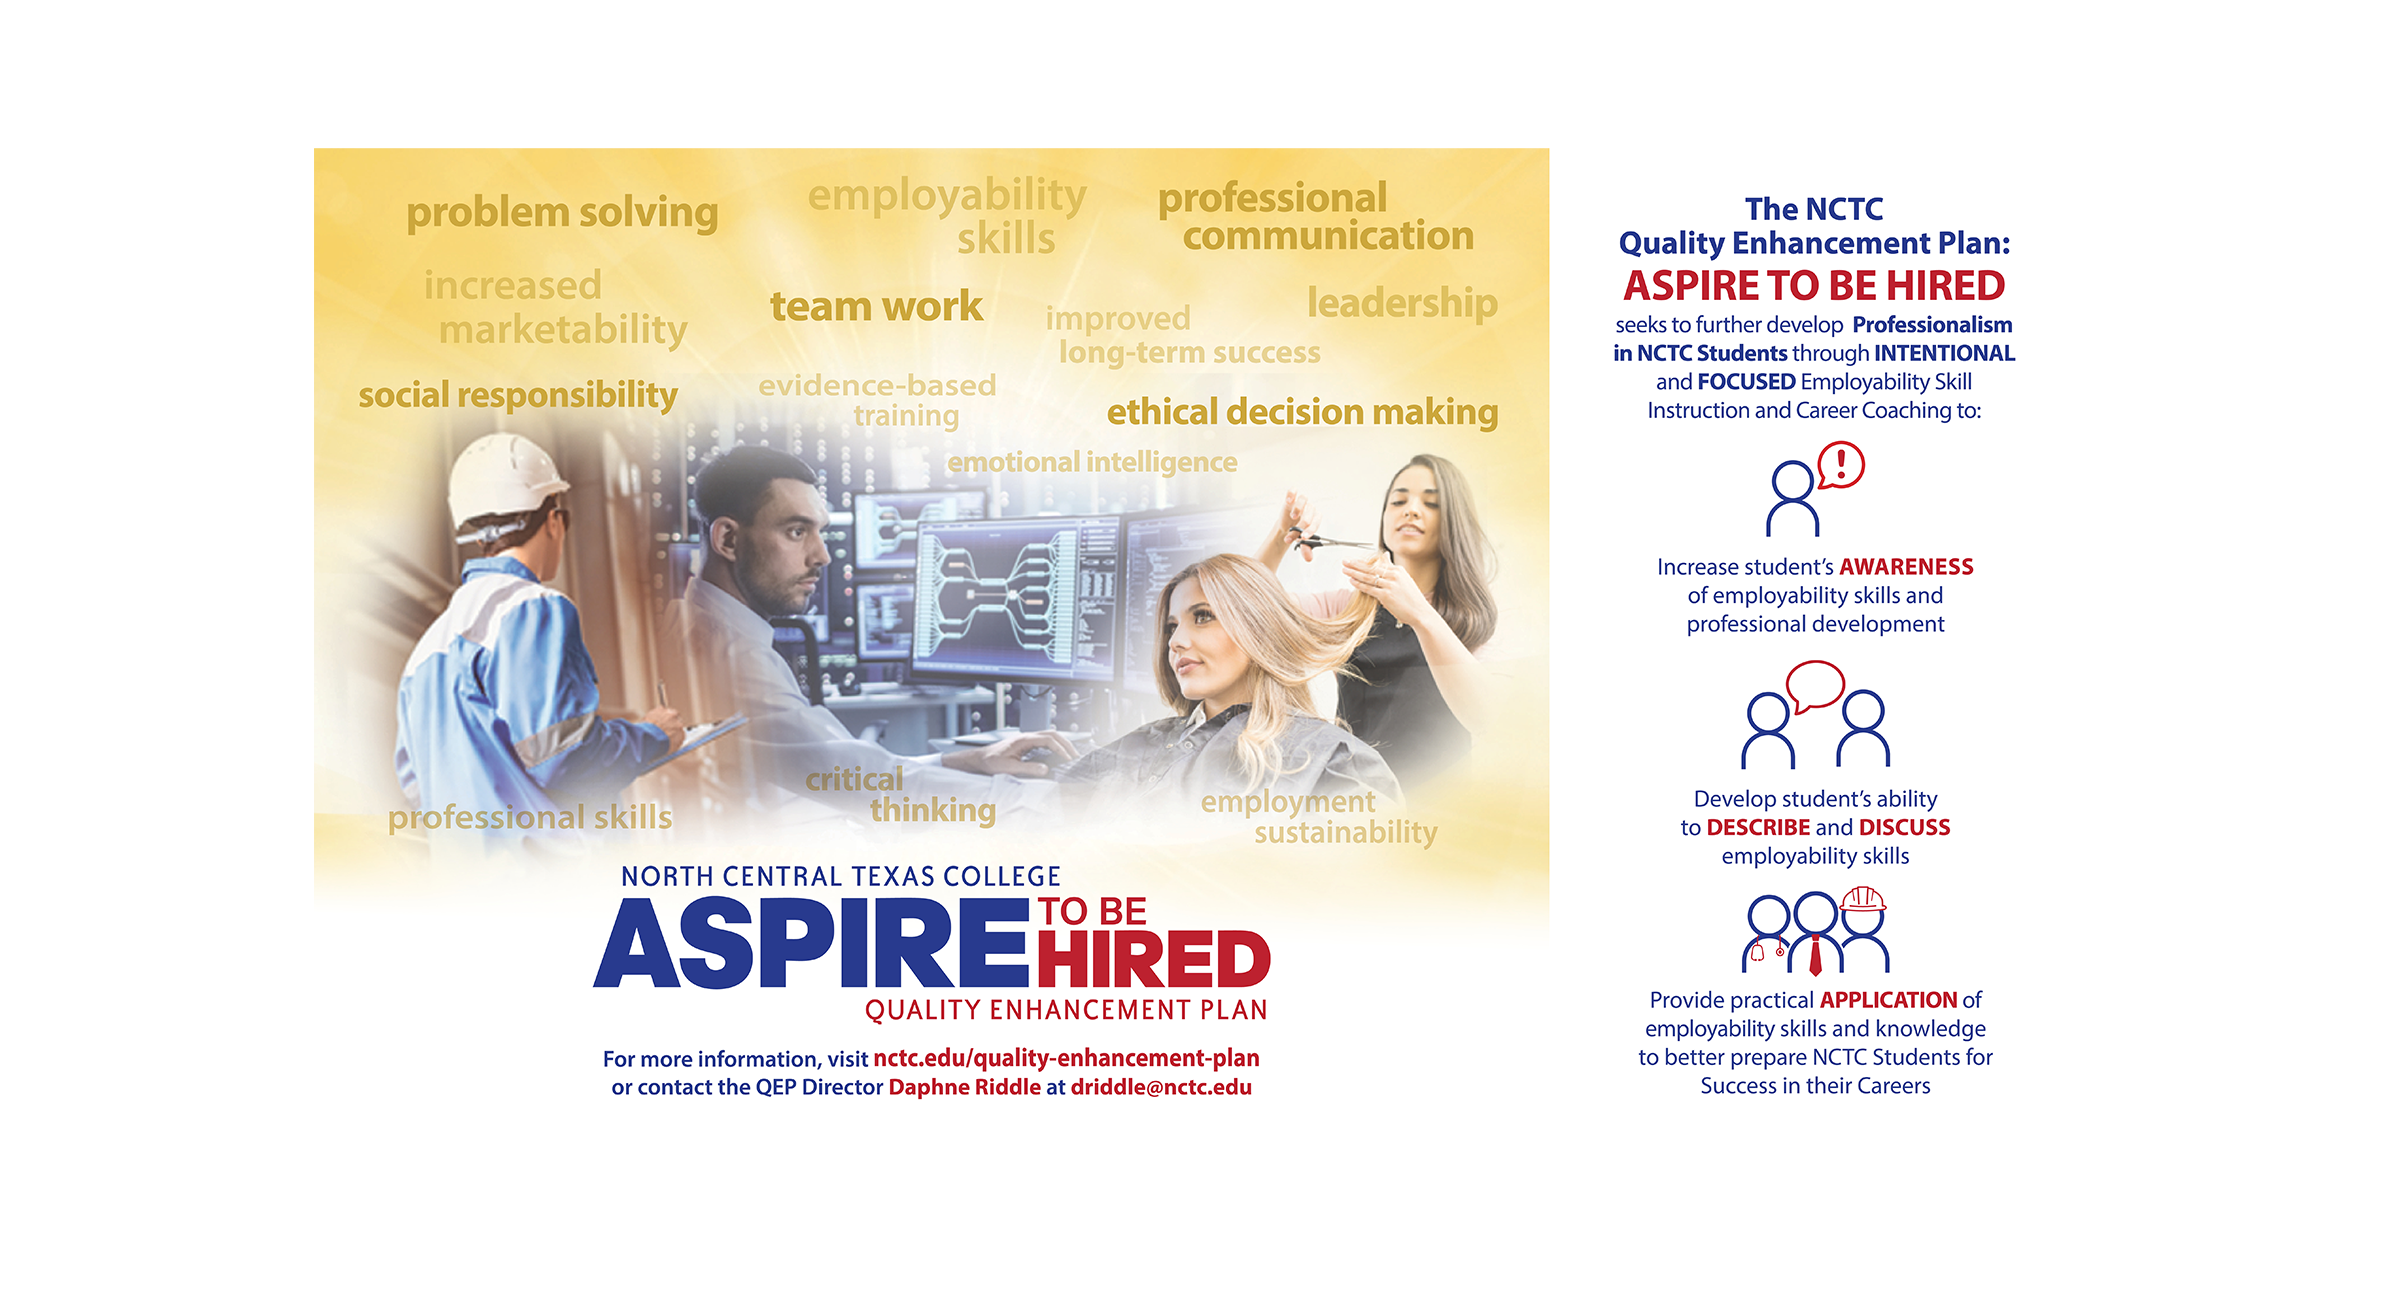 Aspire to Be Hired